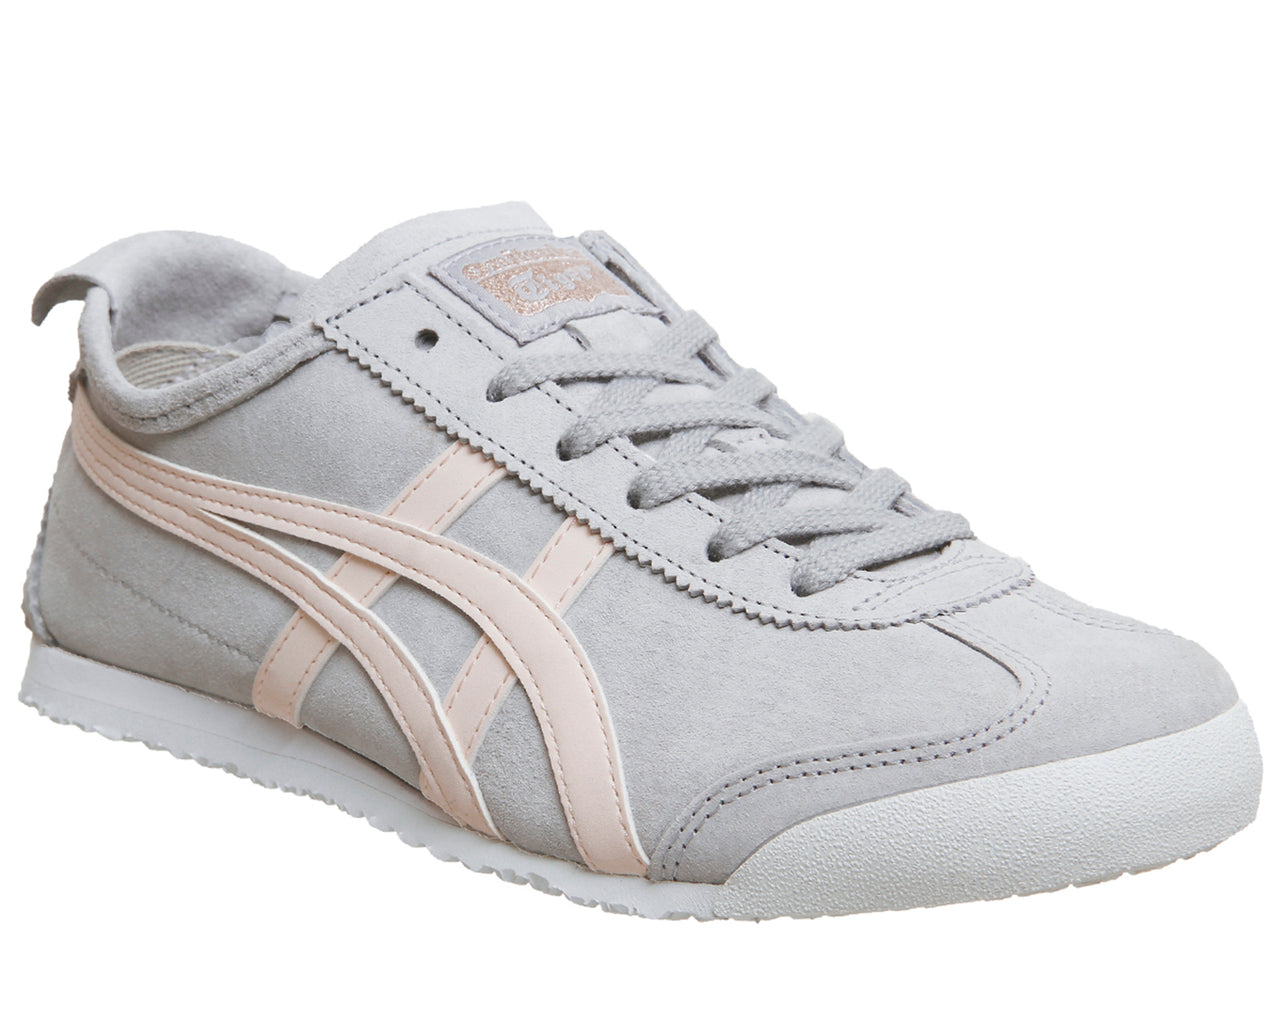 promo code 4e1cc 75278 Womens Onitsuka Tiger Mexico 66 Trainers Grey Pink Suede